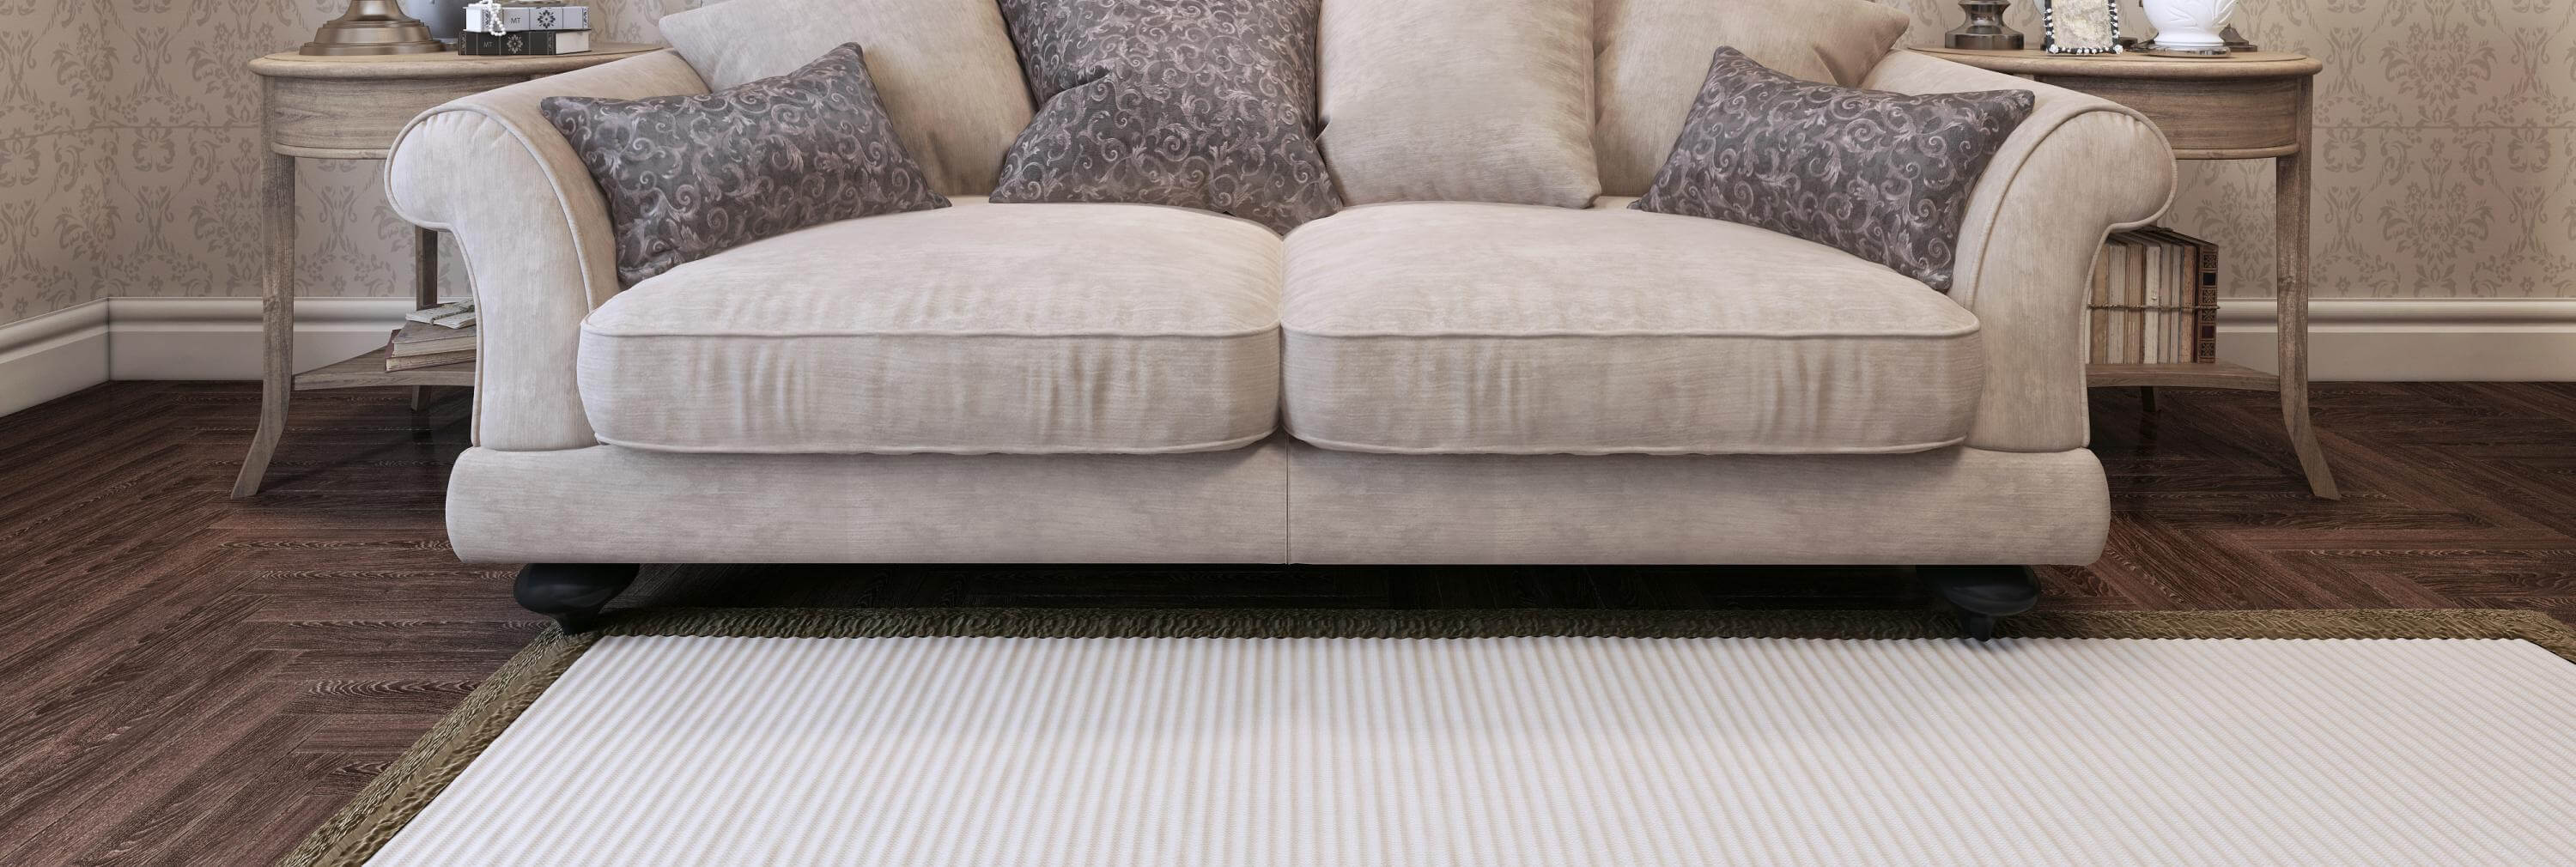 carpet cleaning utah, why to clean carpets more often